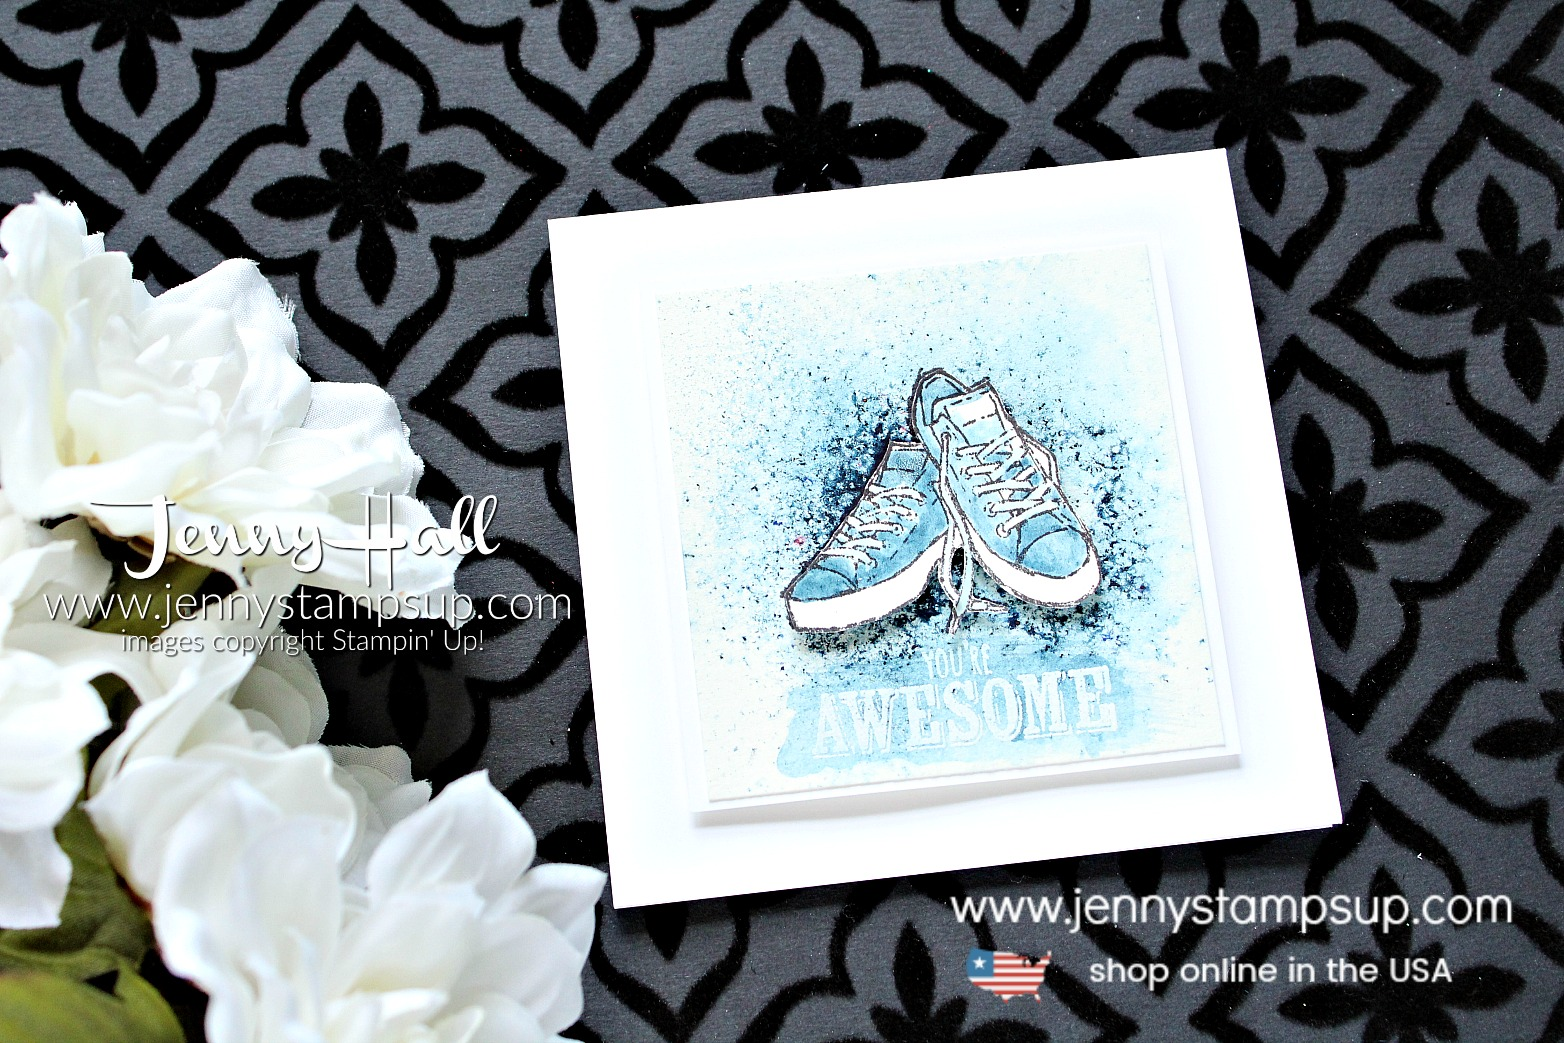 National Craft Month Blog Hop card created by Jenny Hall at www.jennystampsup.com for #cardmaking #bloghop #youtuber #craftyyoutuber #videotutorial #brusho #watercolor #grungetechnique #blueshoes #jennyhalldesign #jennyhall #jennystampsup #jennyhallstampinup #crafts #paperembossing #watercolorpainting #lifestyle #handmadecard #greetingcard